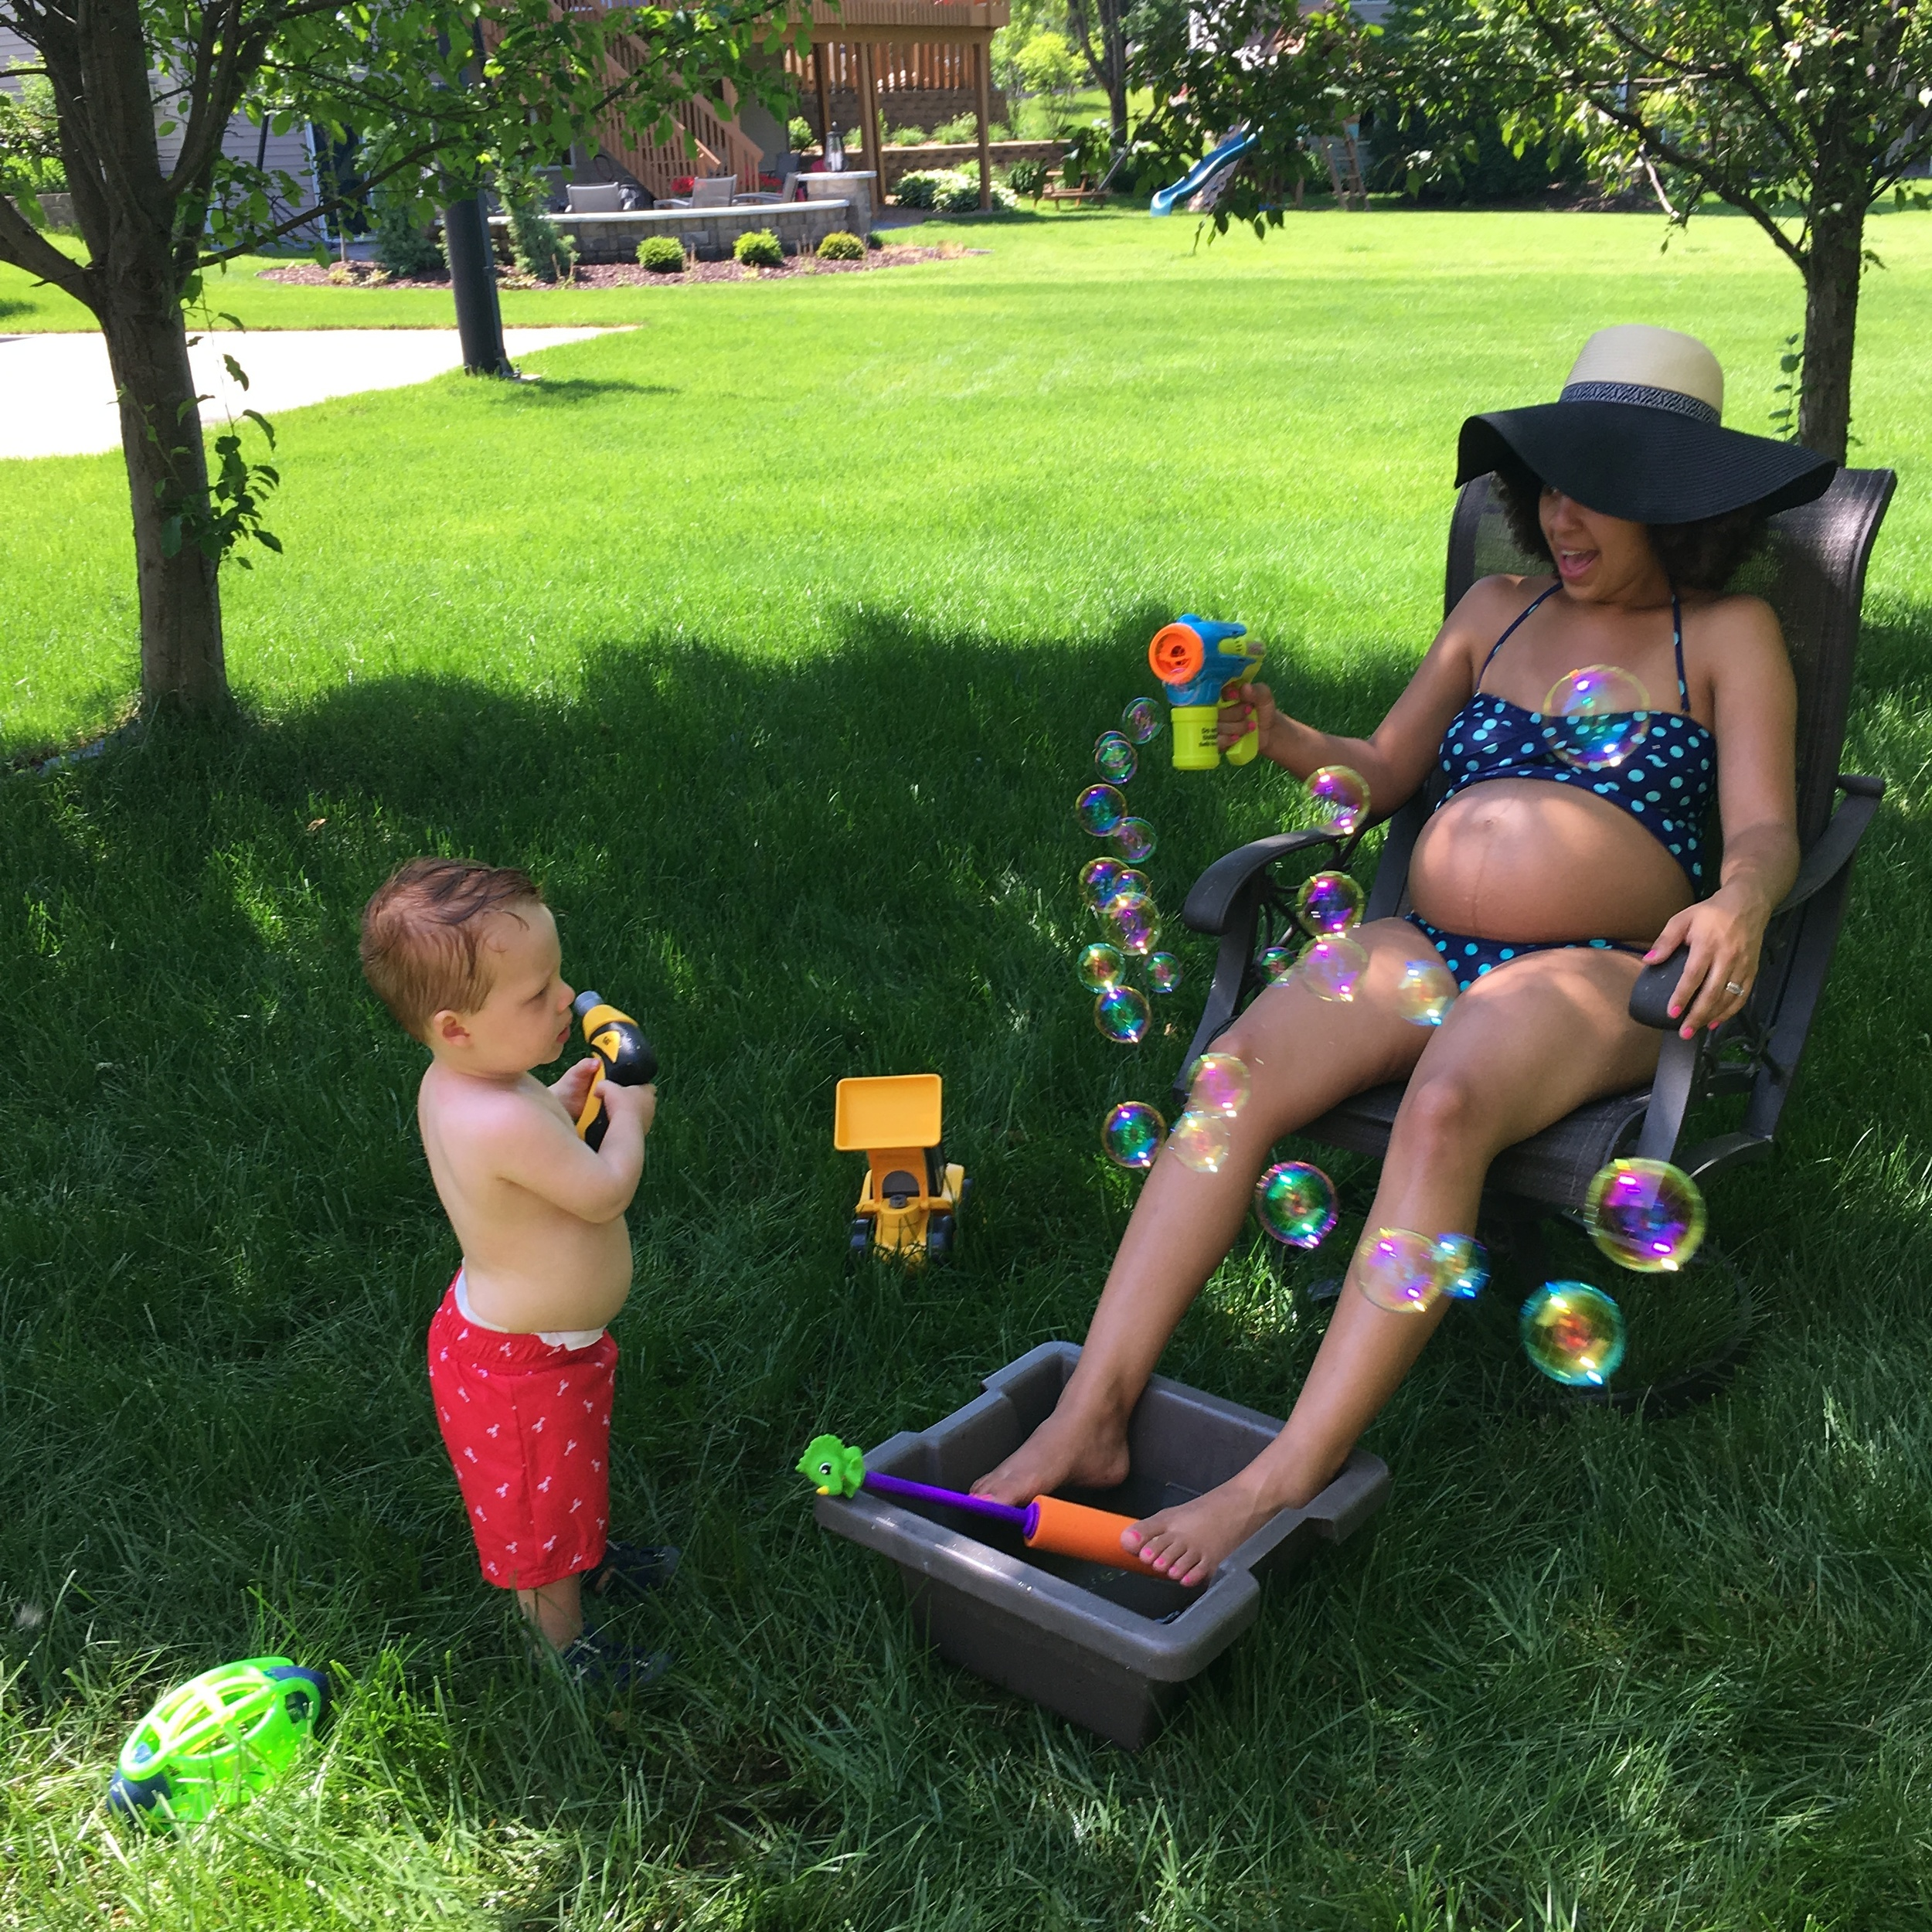 Summer essentials for the eternally pregnant:shade, sunhat, cold water bucket and bubbles.